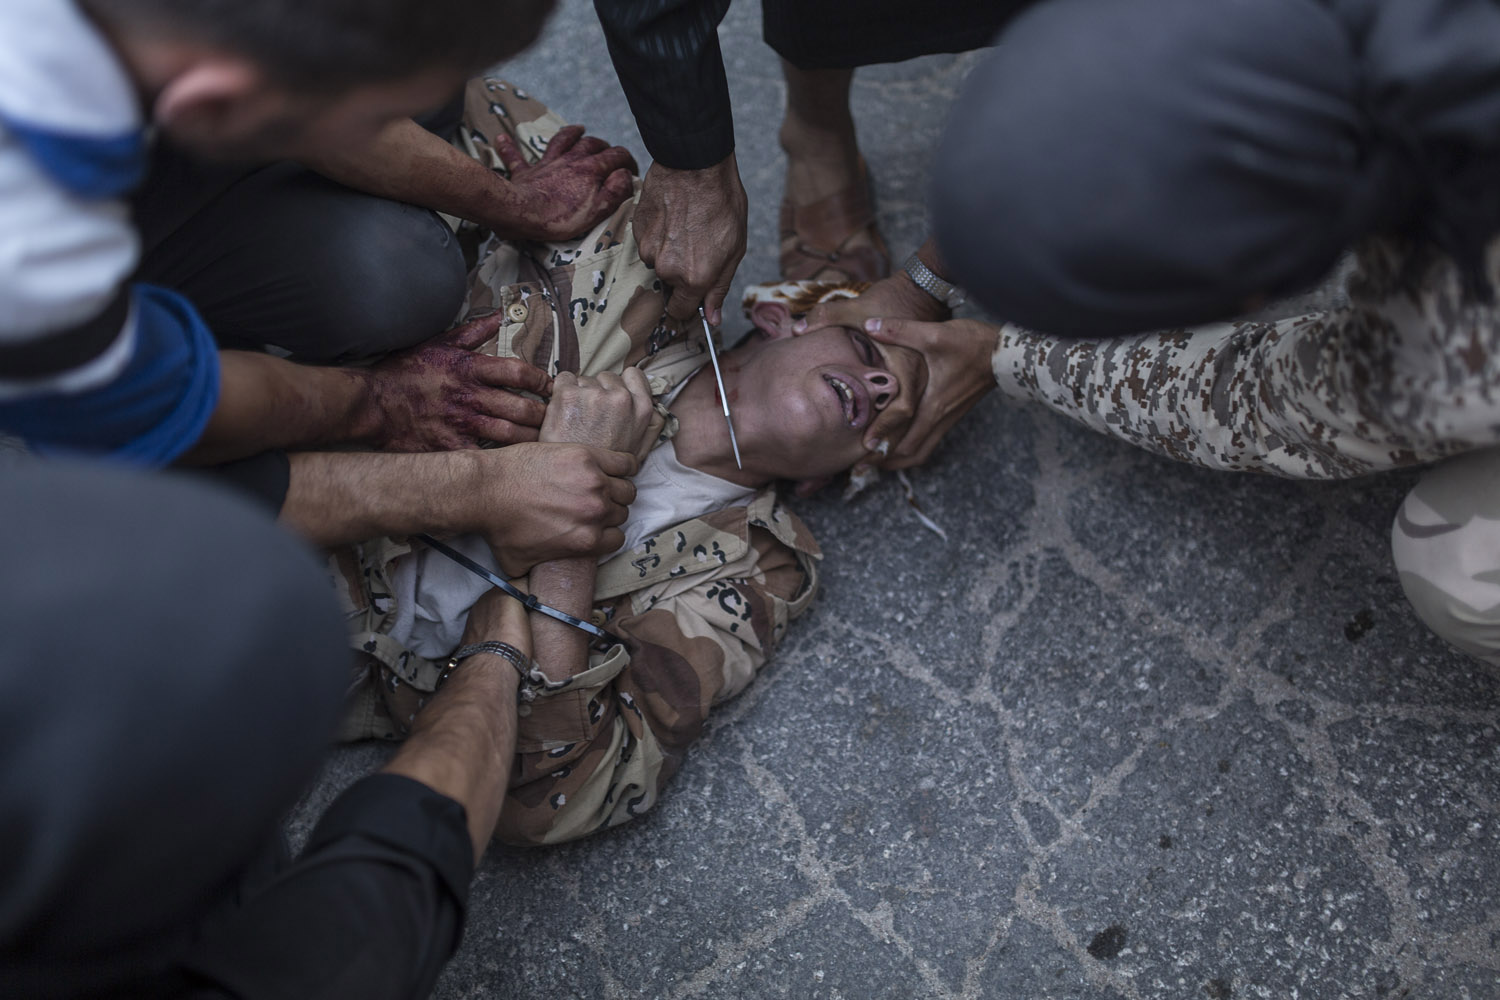 Aug. 31, 2013. A young Syrian man is executed by anti-regime rebels in the town of Keferghan, near Aleppo.